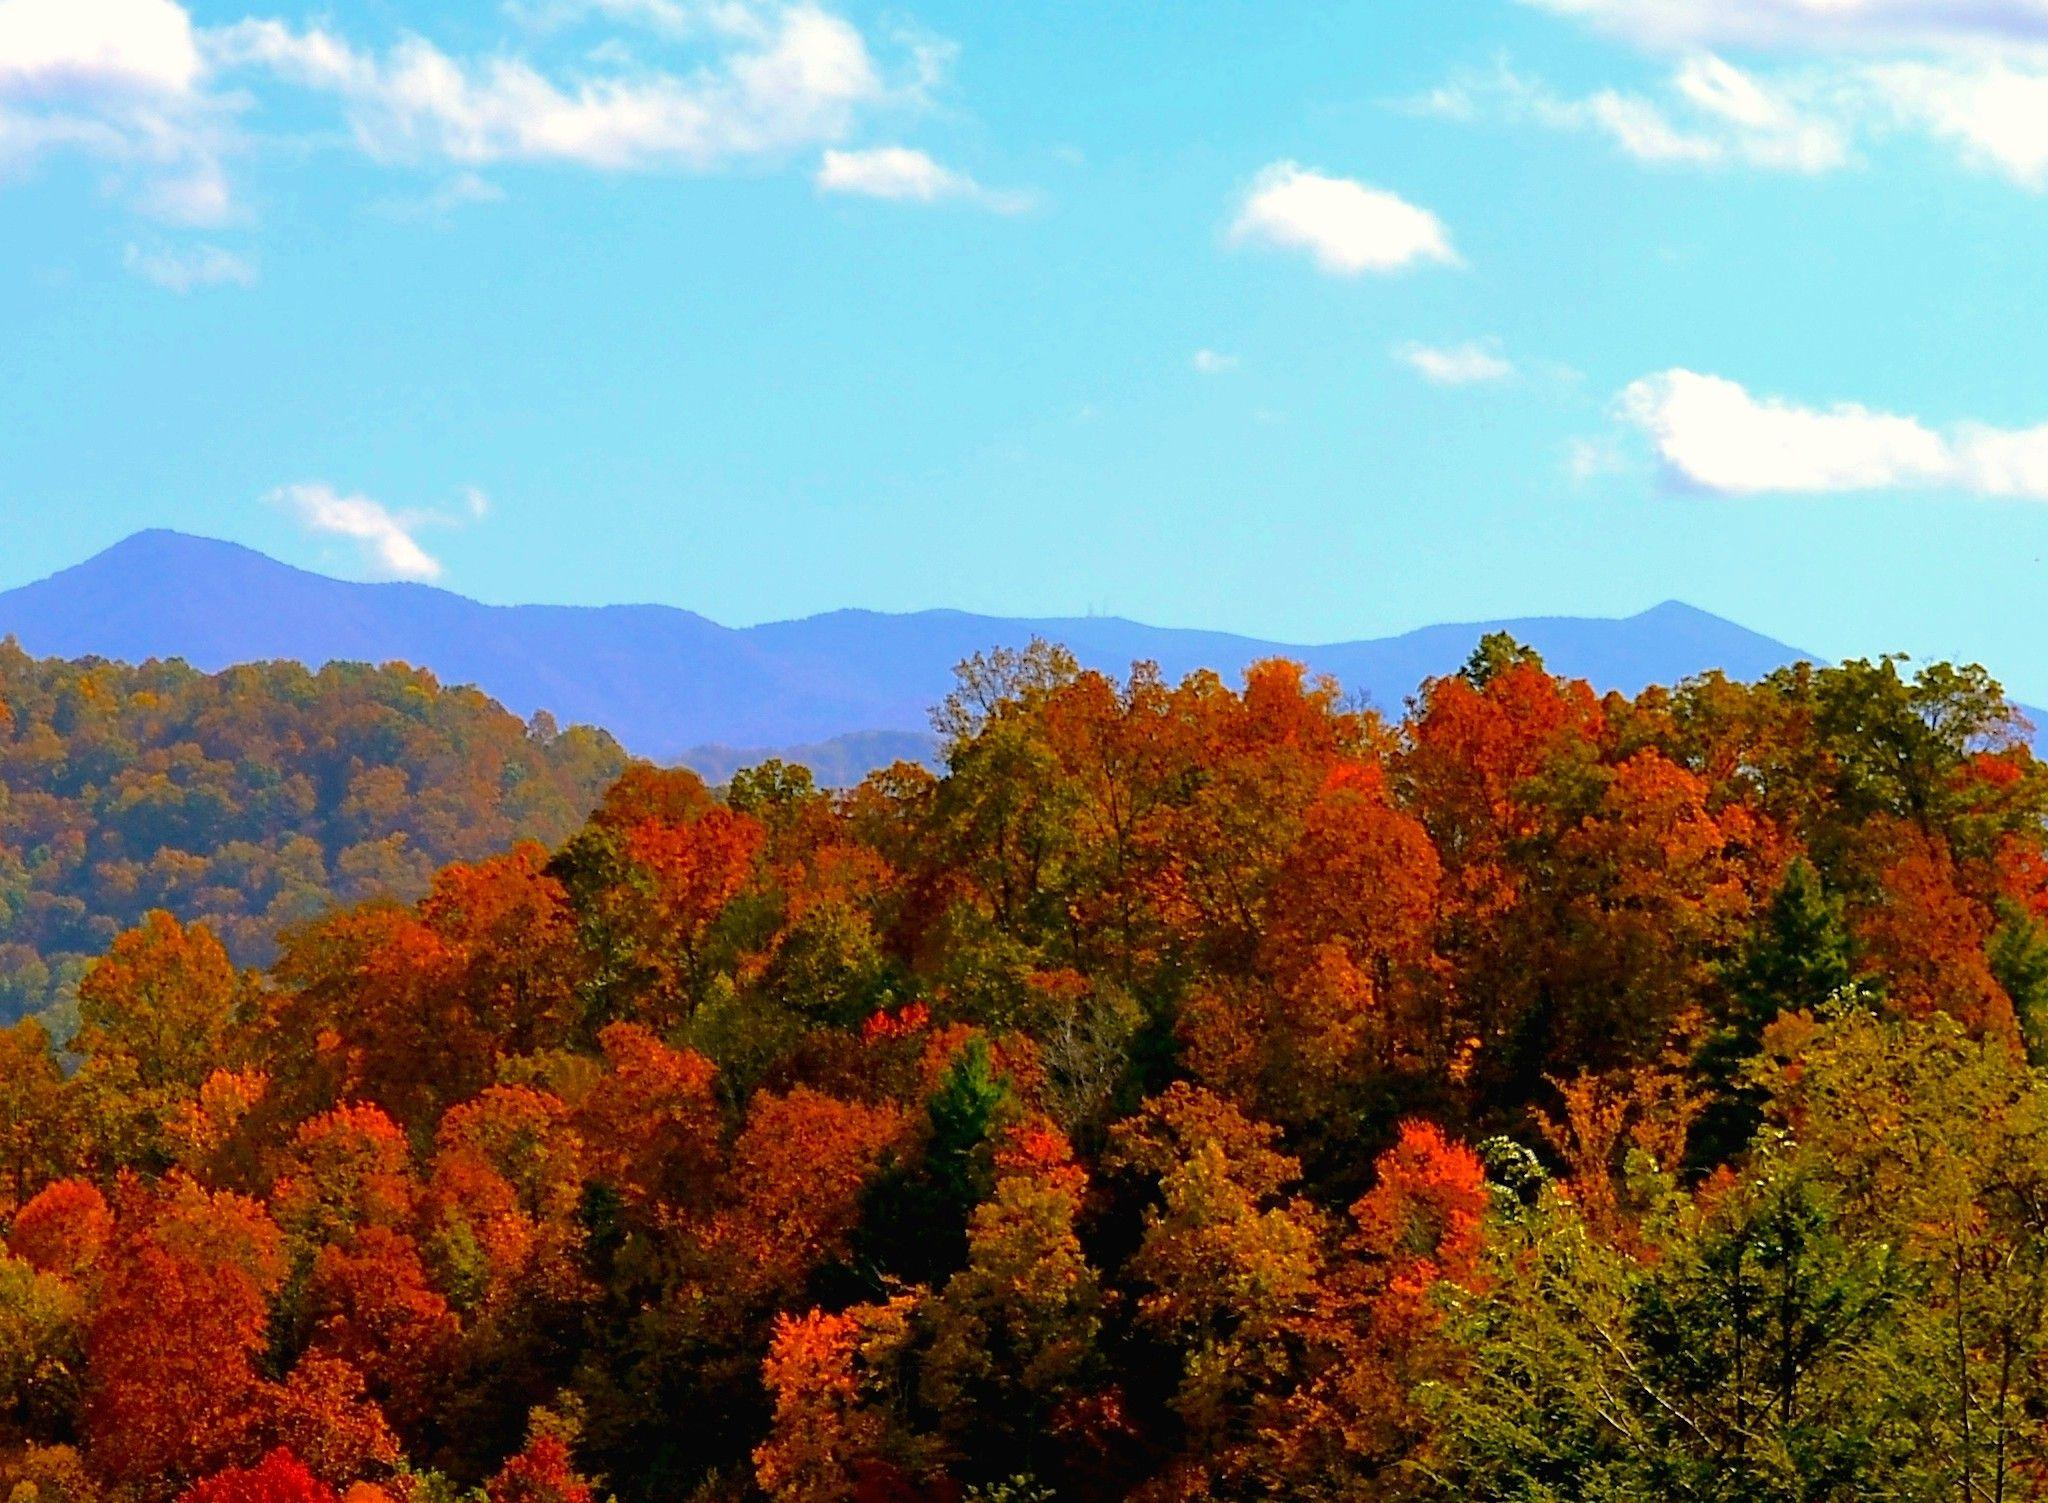 Autumn NC Mountains Wallpapers - Top Free Autumn NC Mountains ...